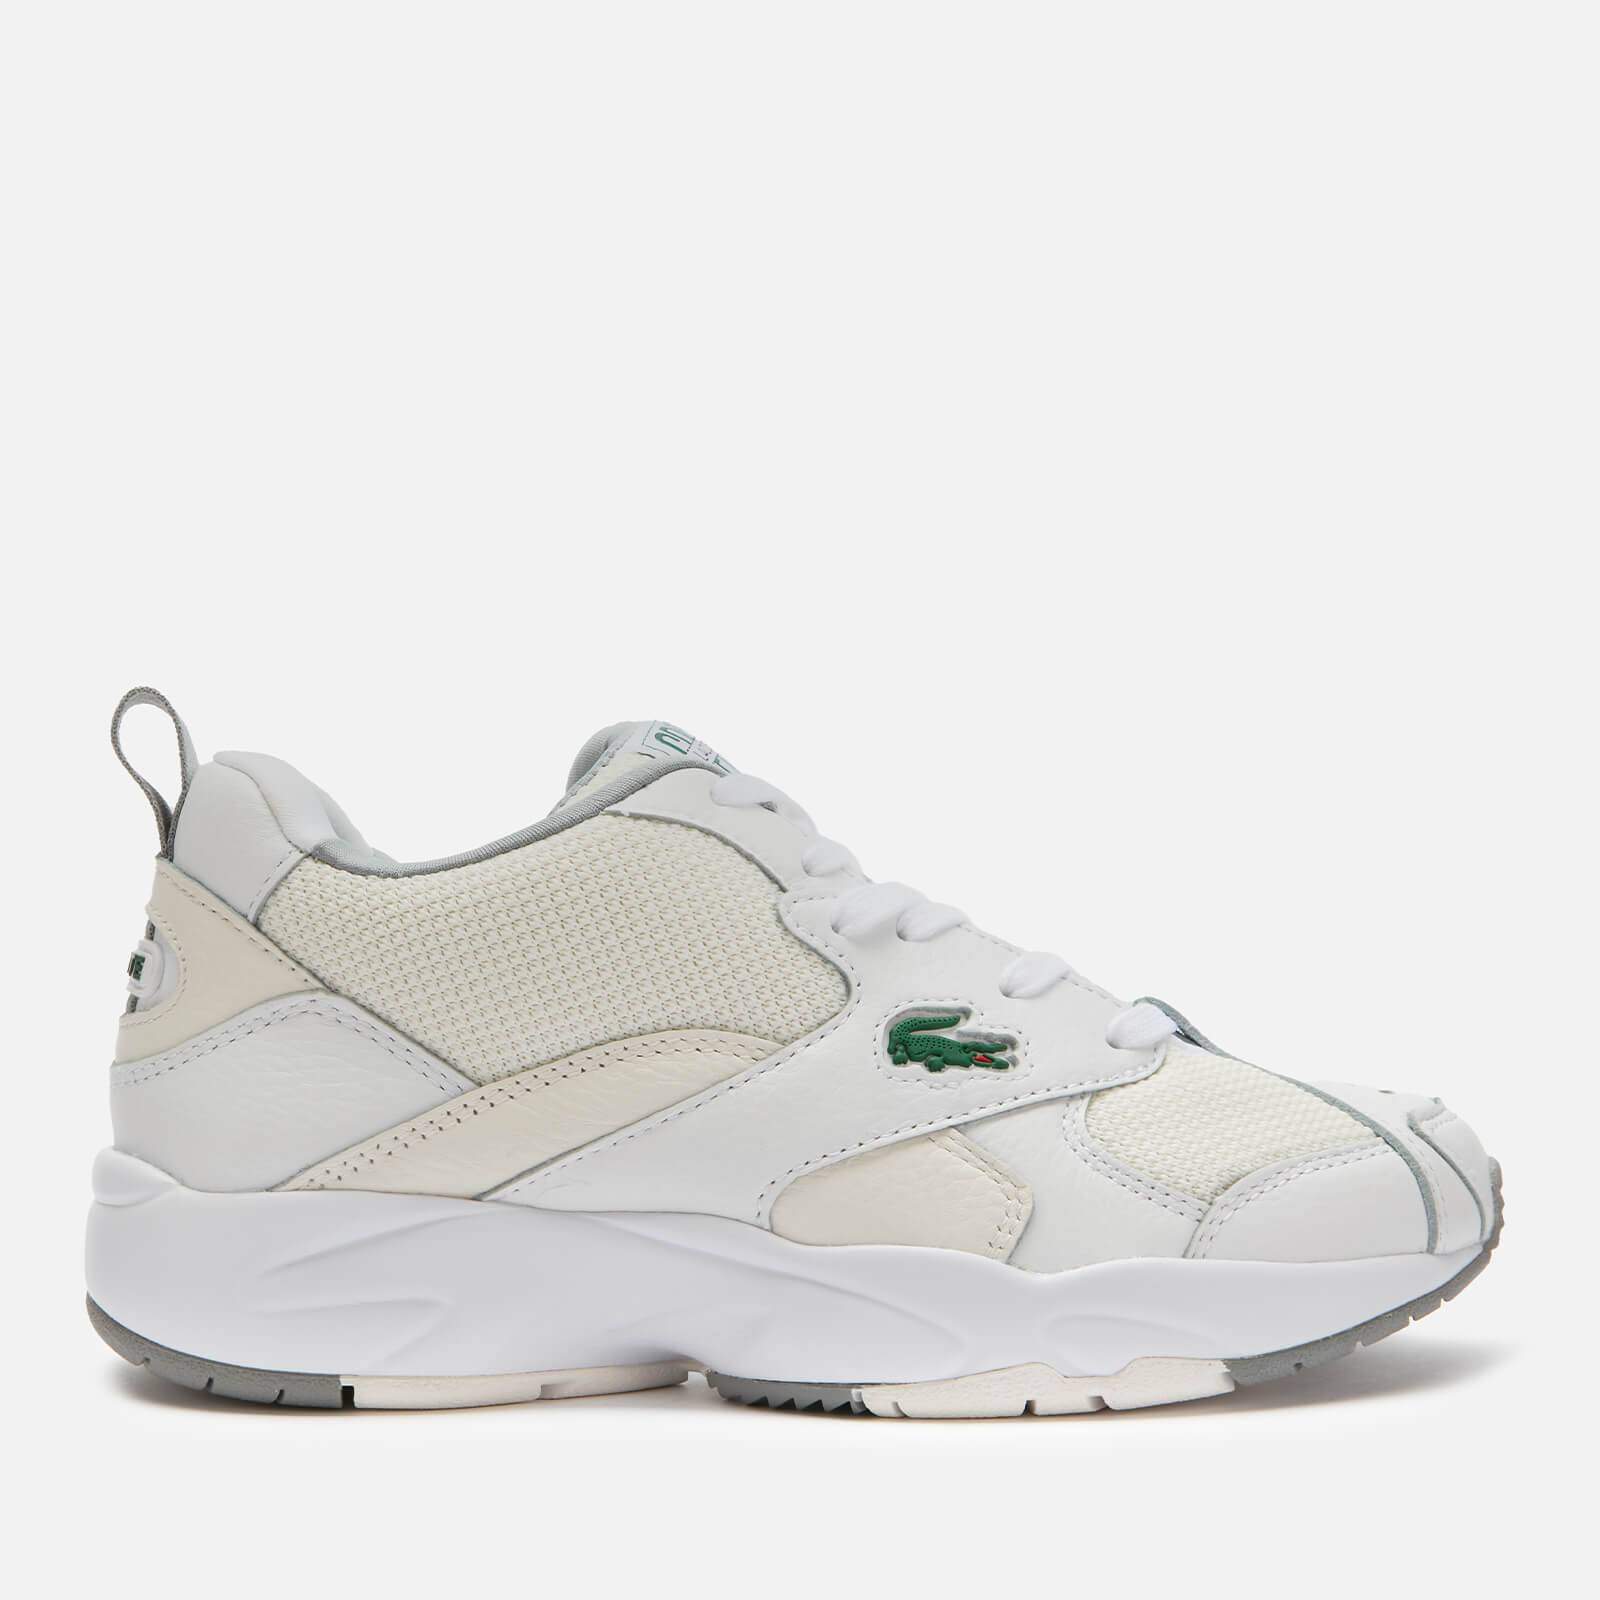 Lacoste Women's Storm 96 120 Chunky Running Style Trainers - White/Off White - UK 4